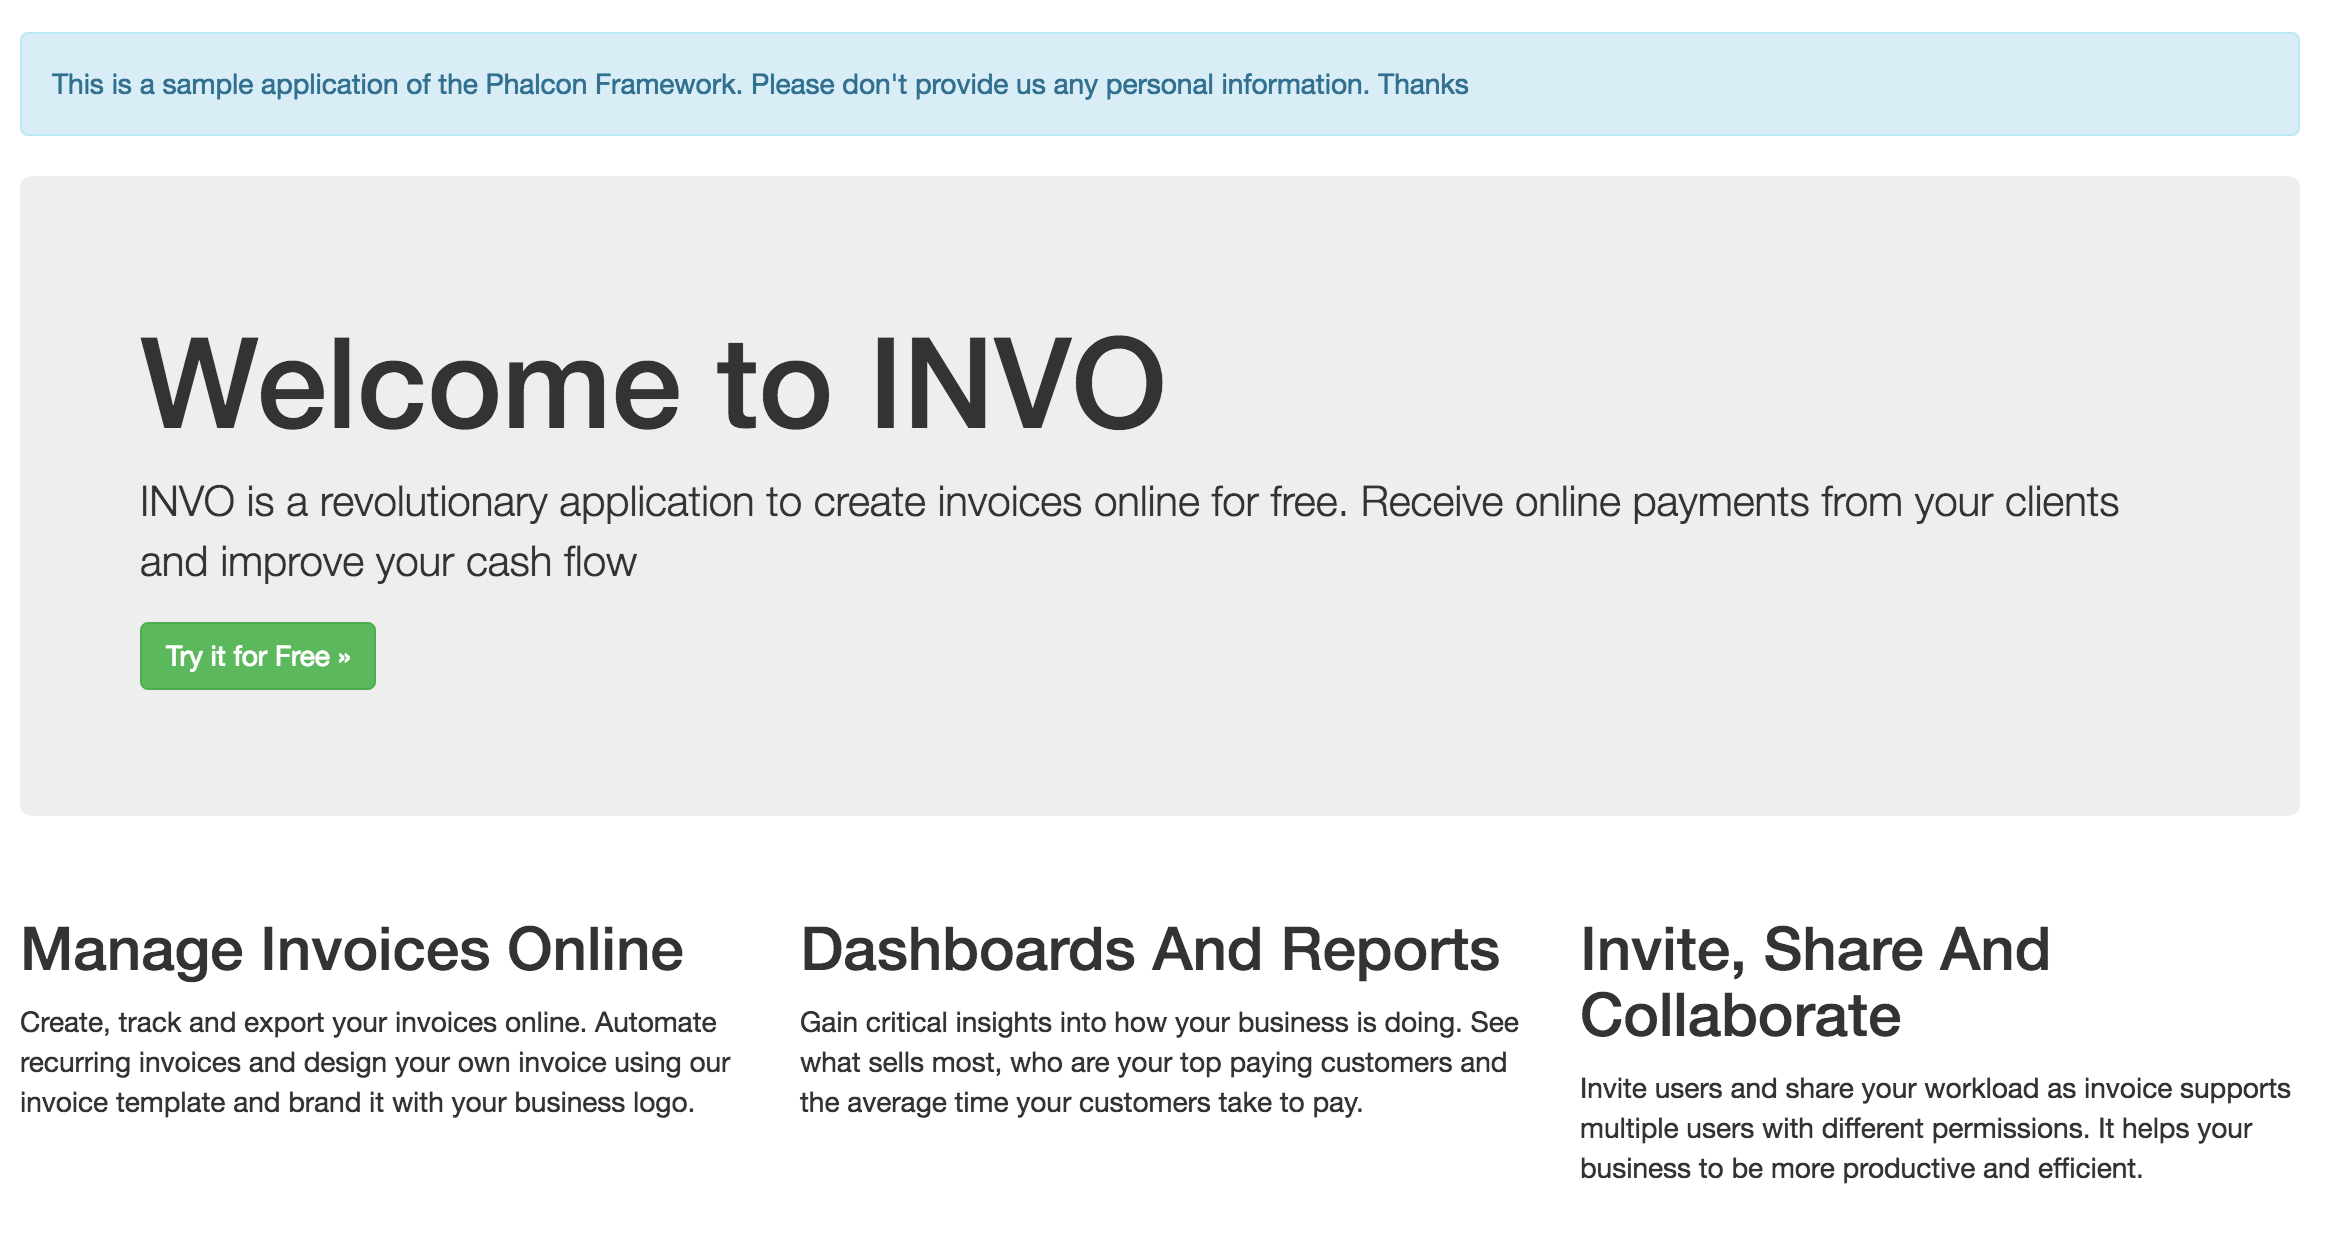 Invo screenshot